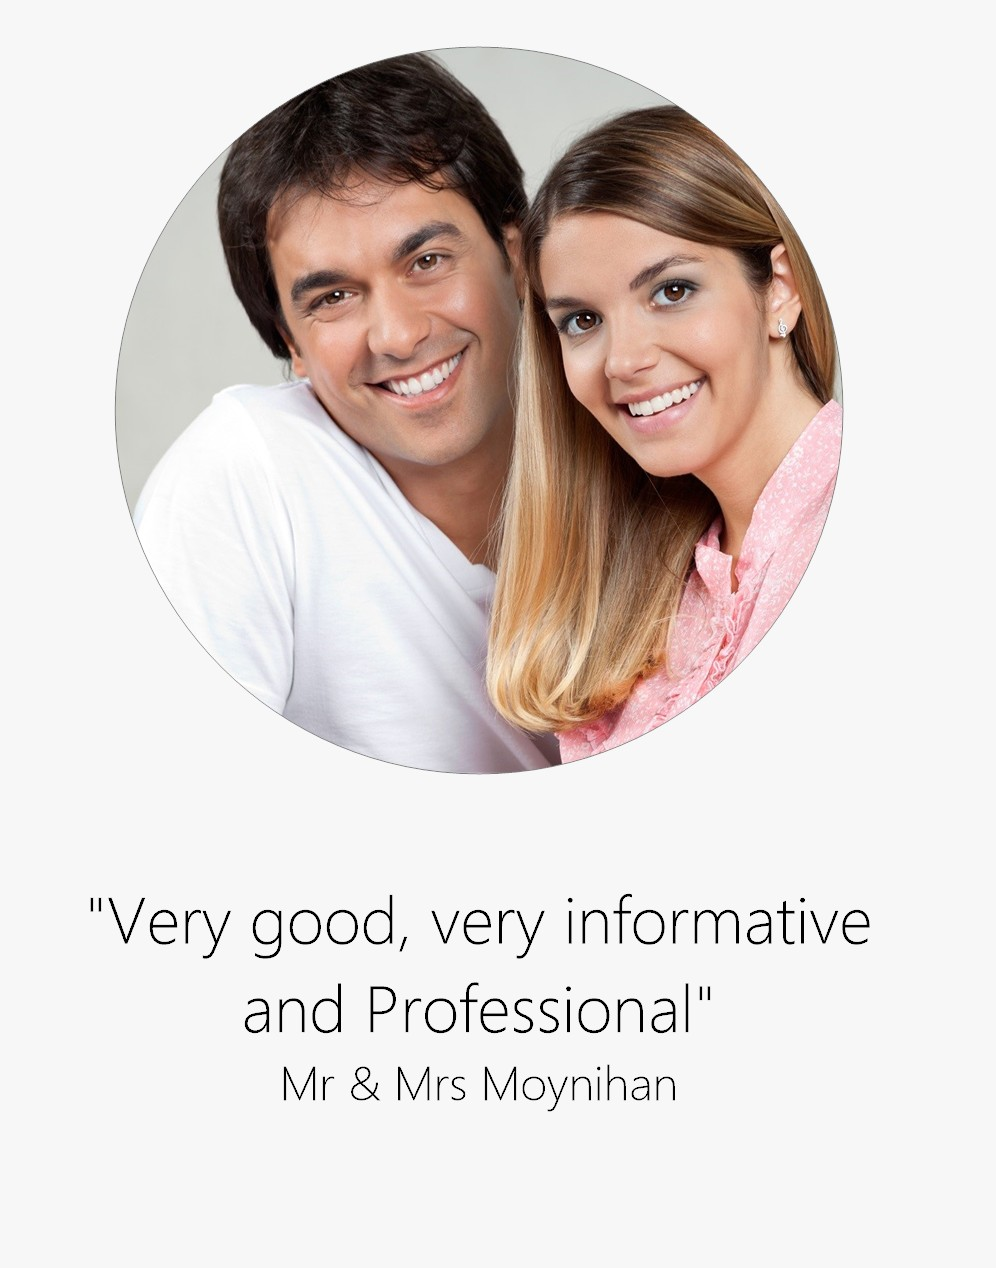 See More Testimonials!